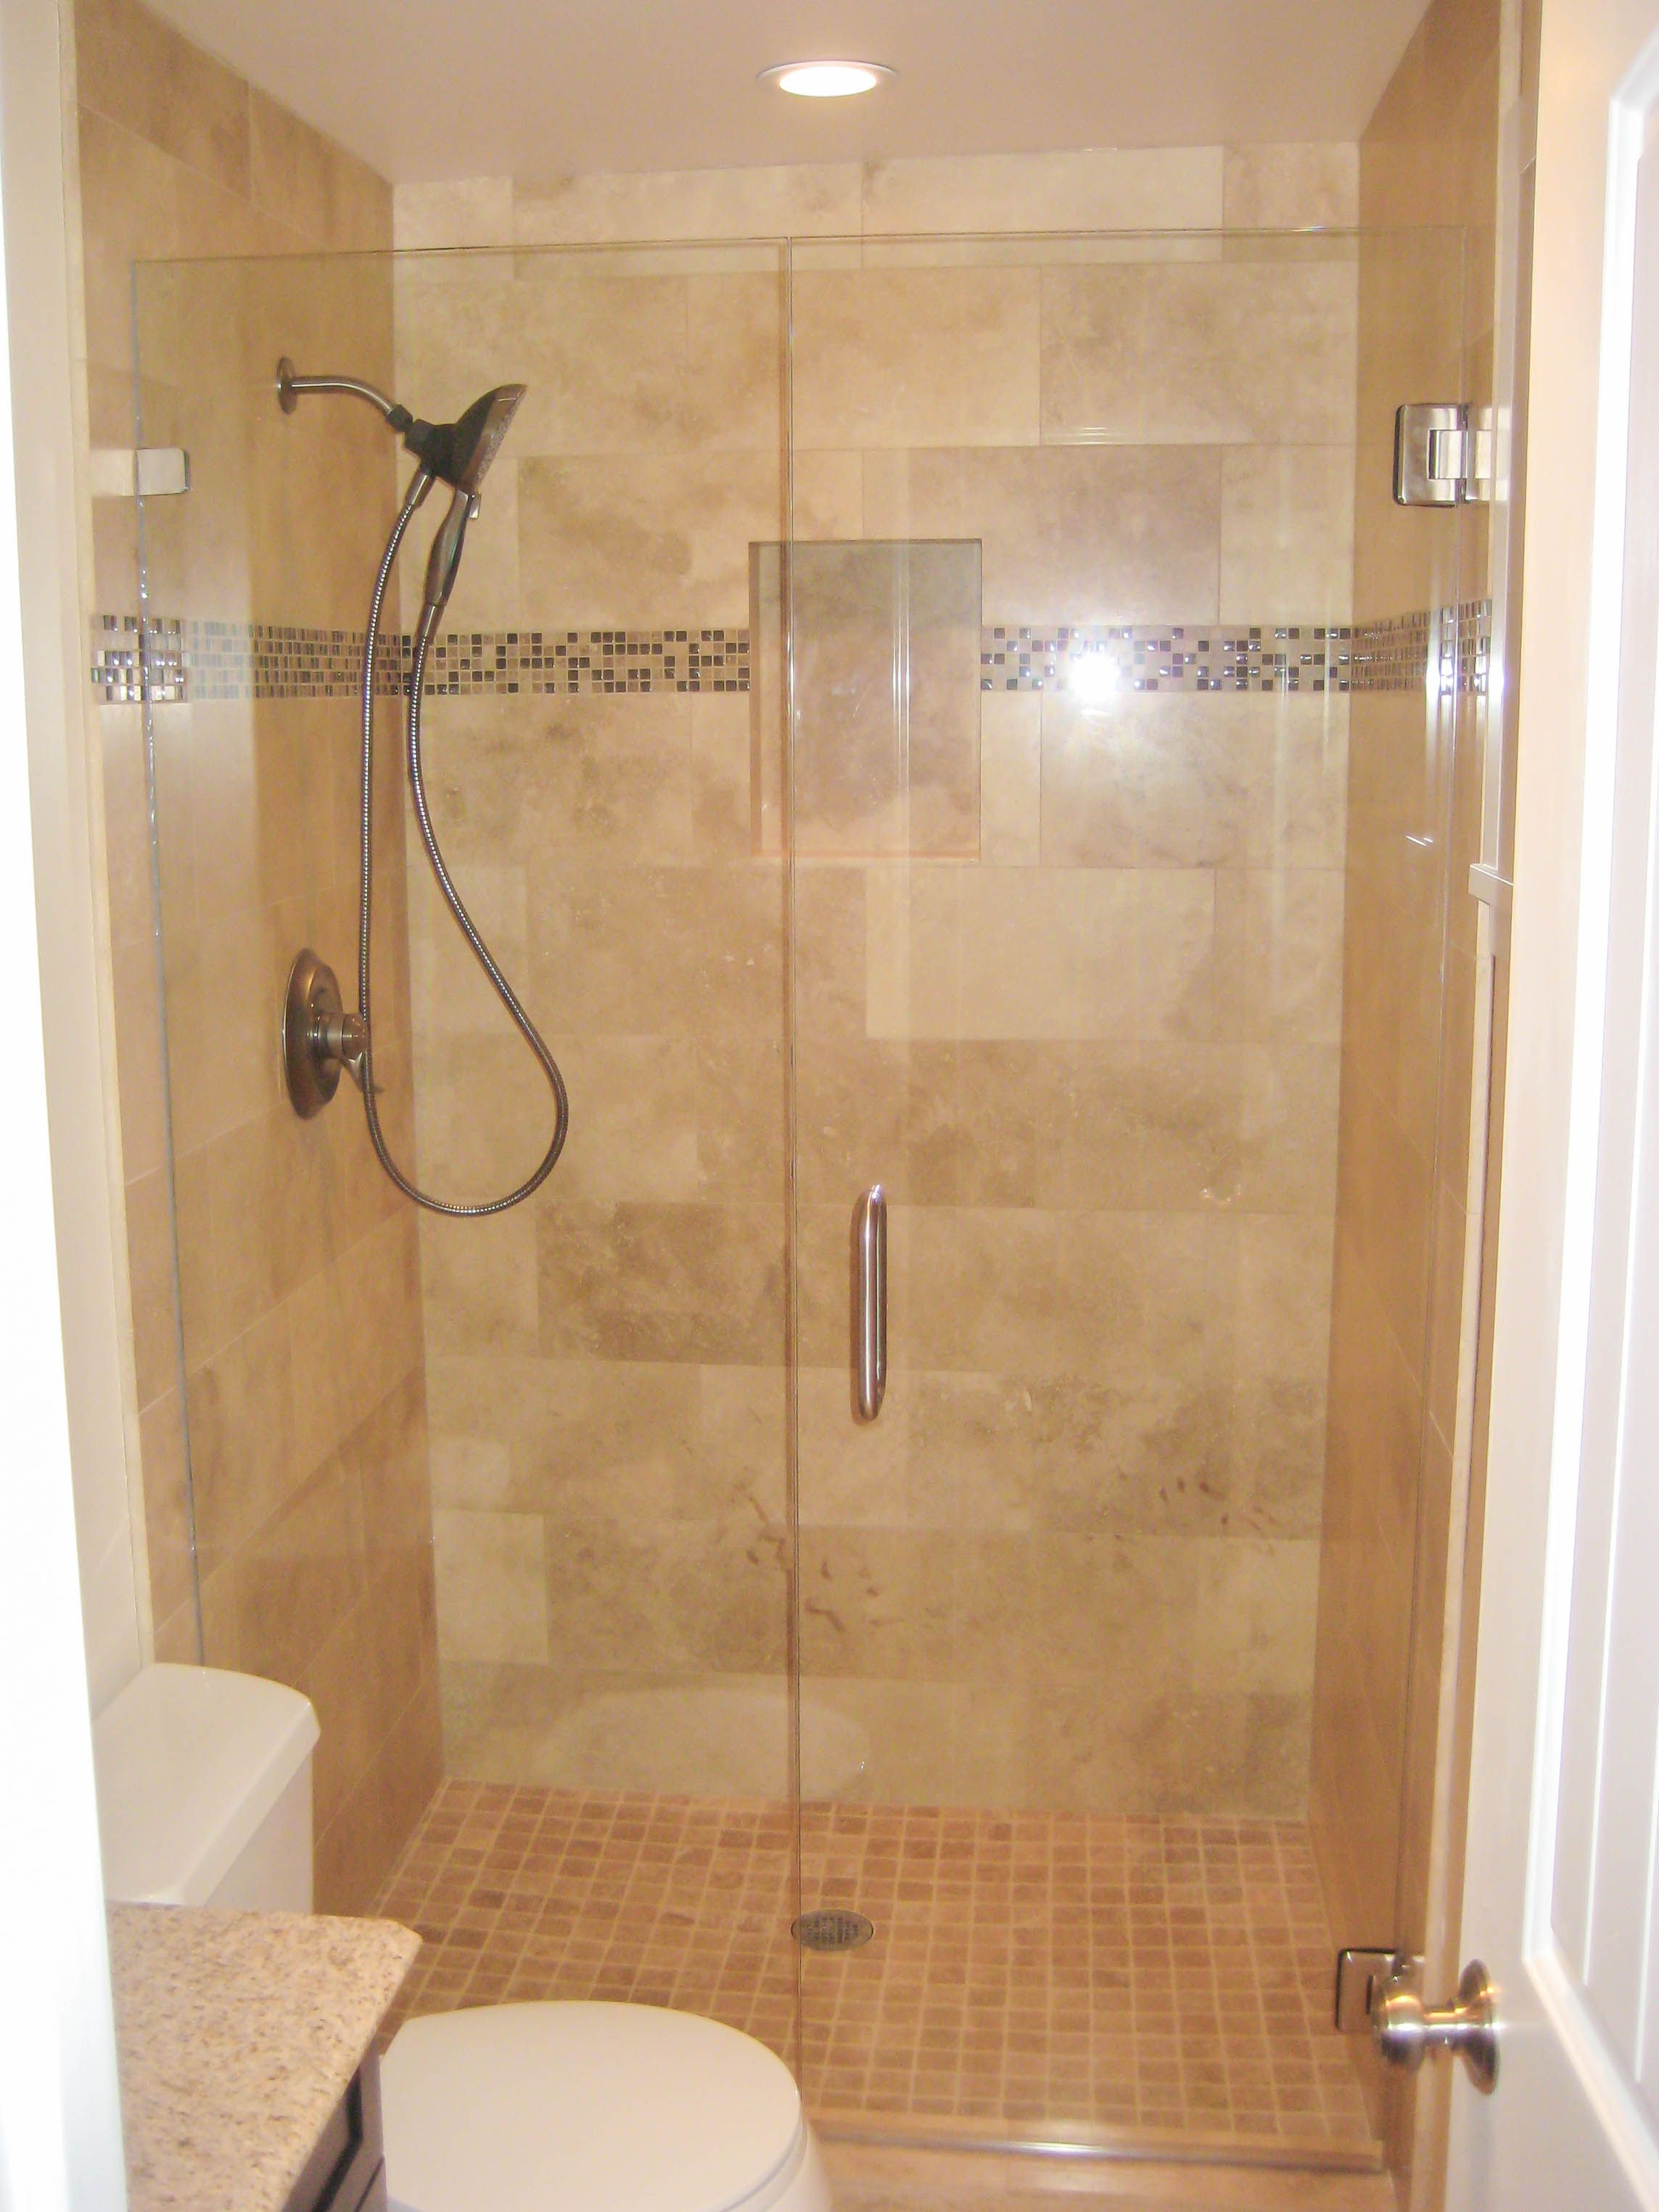 Check Our Tile Contractor Bathroom Showers Photos Gallery For Finding New  Fresh Ideas For Your Bathroom